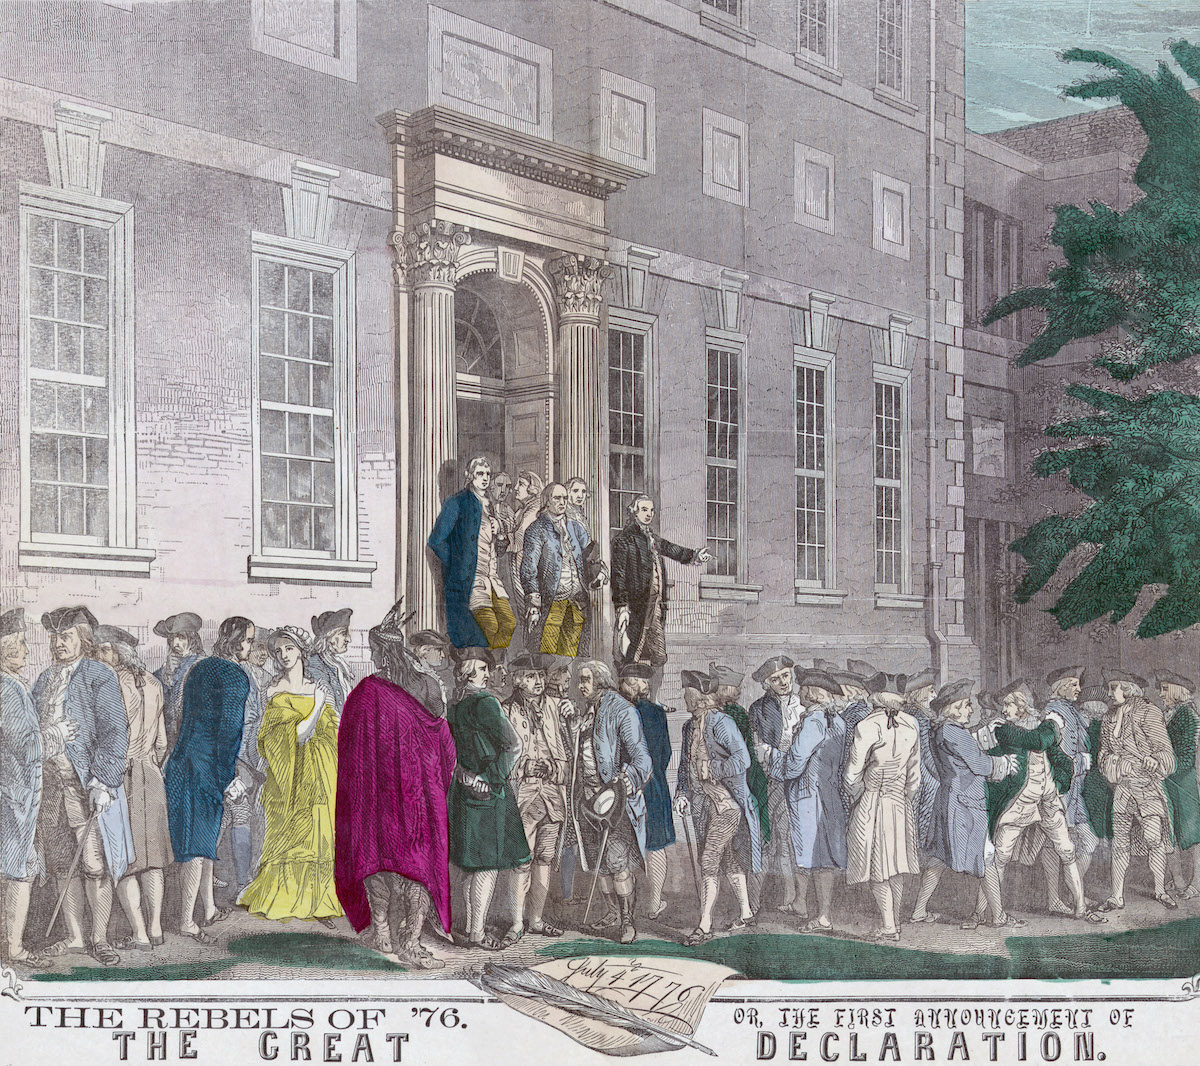 A 19th-century print shows members of the Second Continental Congress leaving Philadelphia's Independence Hall after adopting the Declaration of Independence from Great Britain.